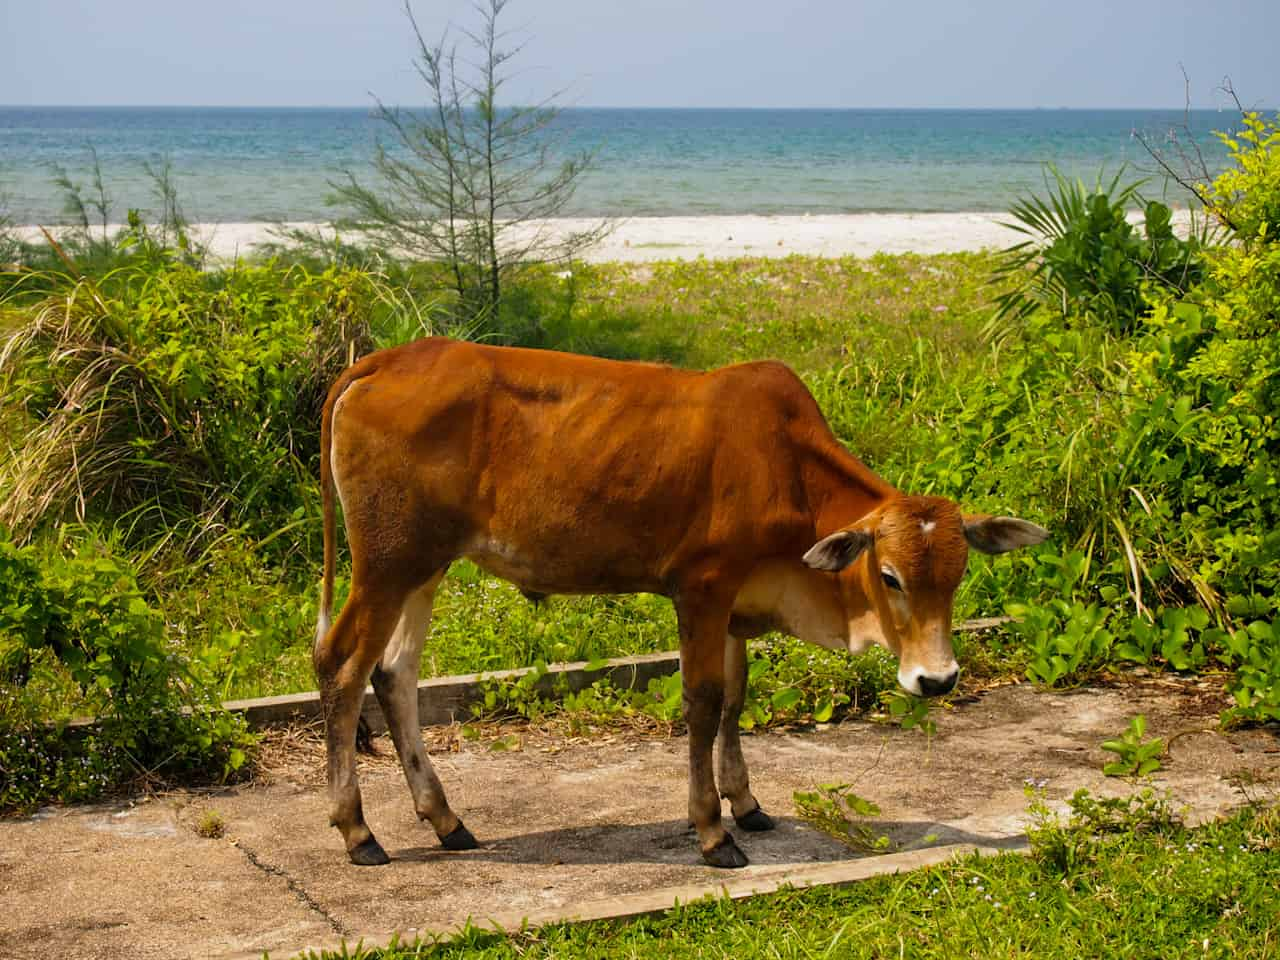 Cow on the beach, Cambodia